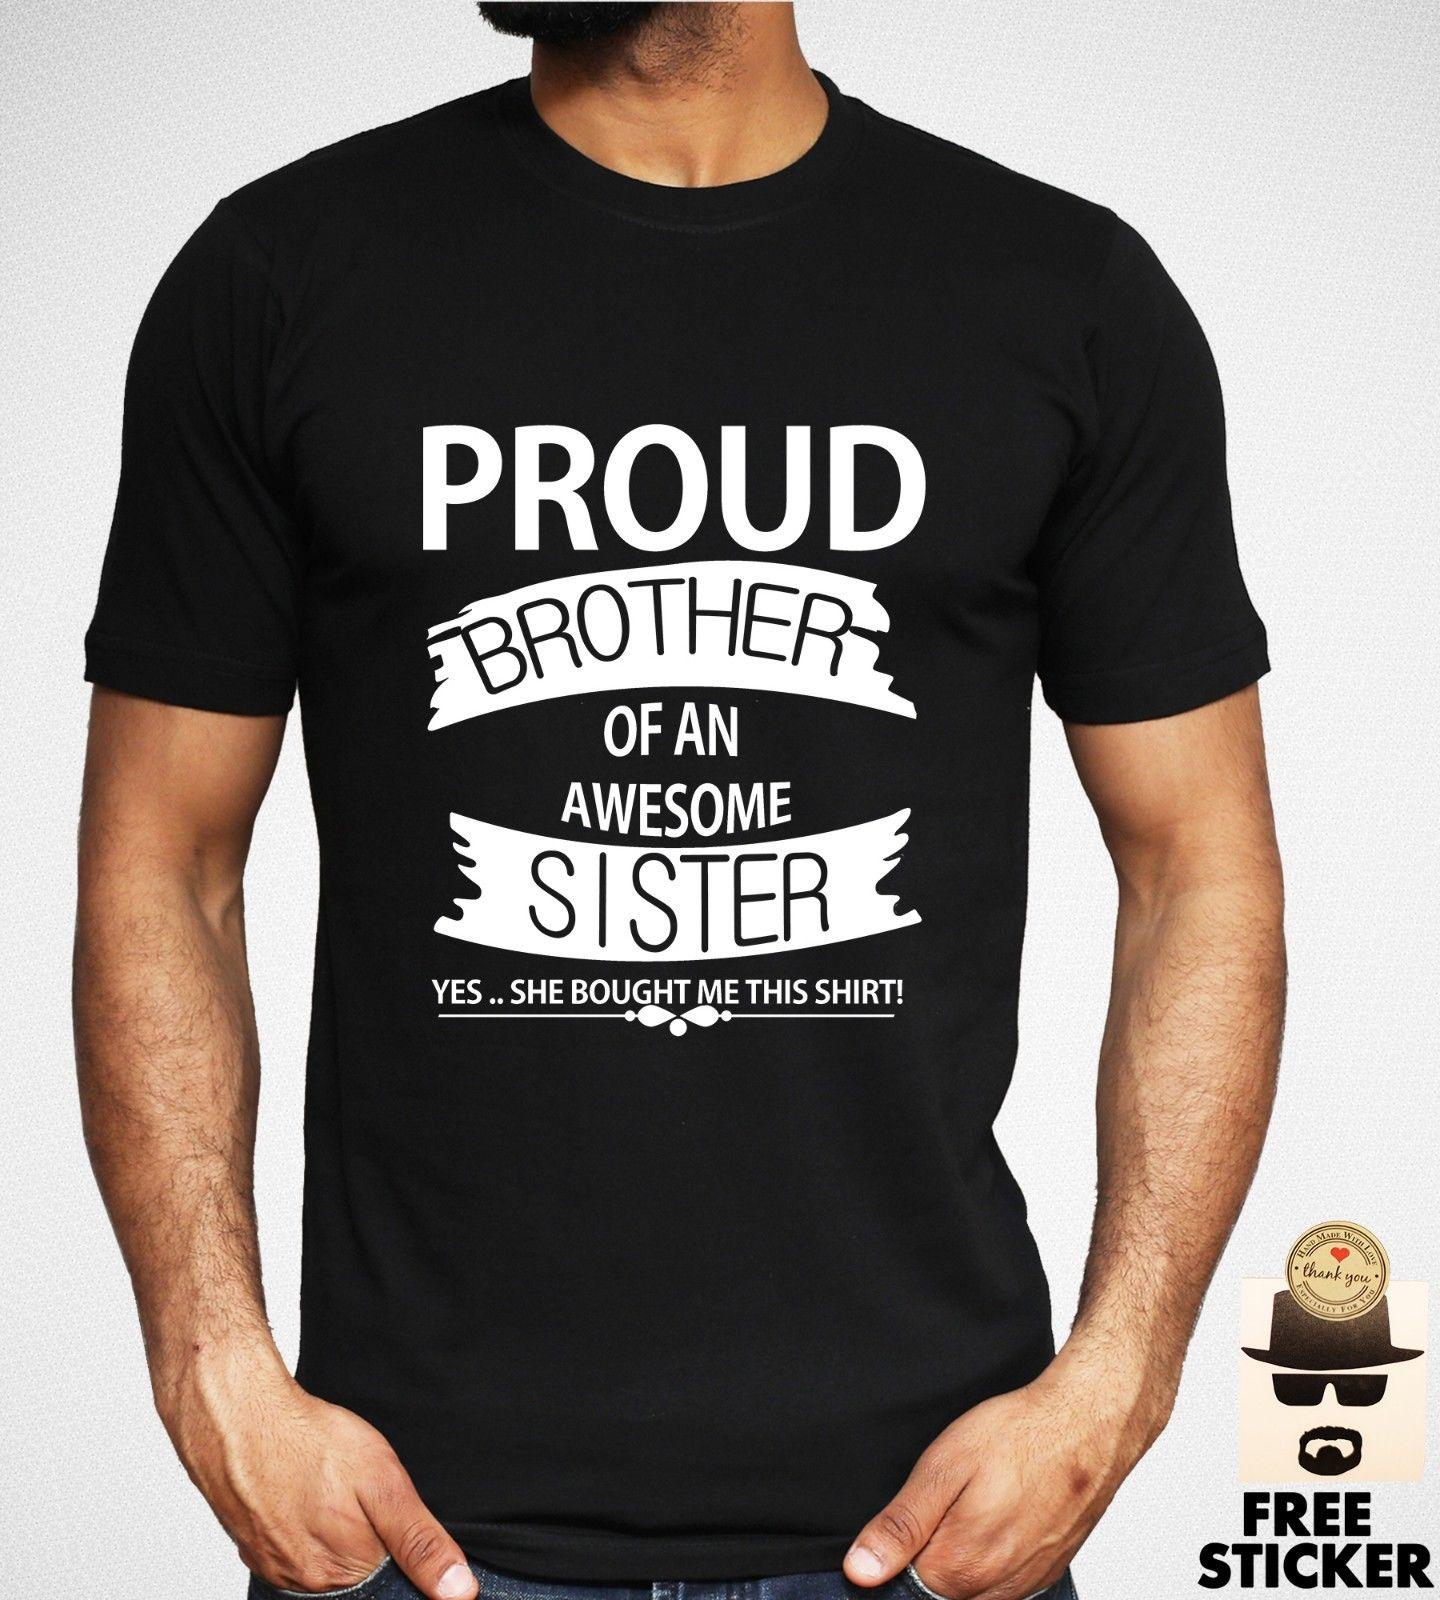 46d54453c1 Proud Brother Of An Awesome Sister T-shirt Funny Family Gift Present ...